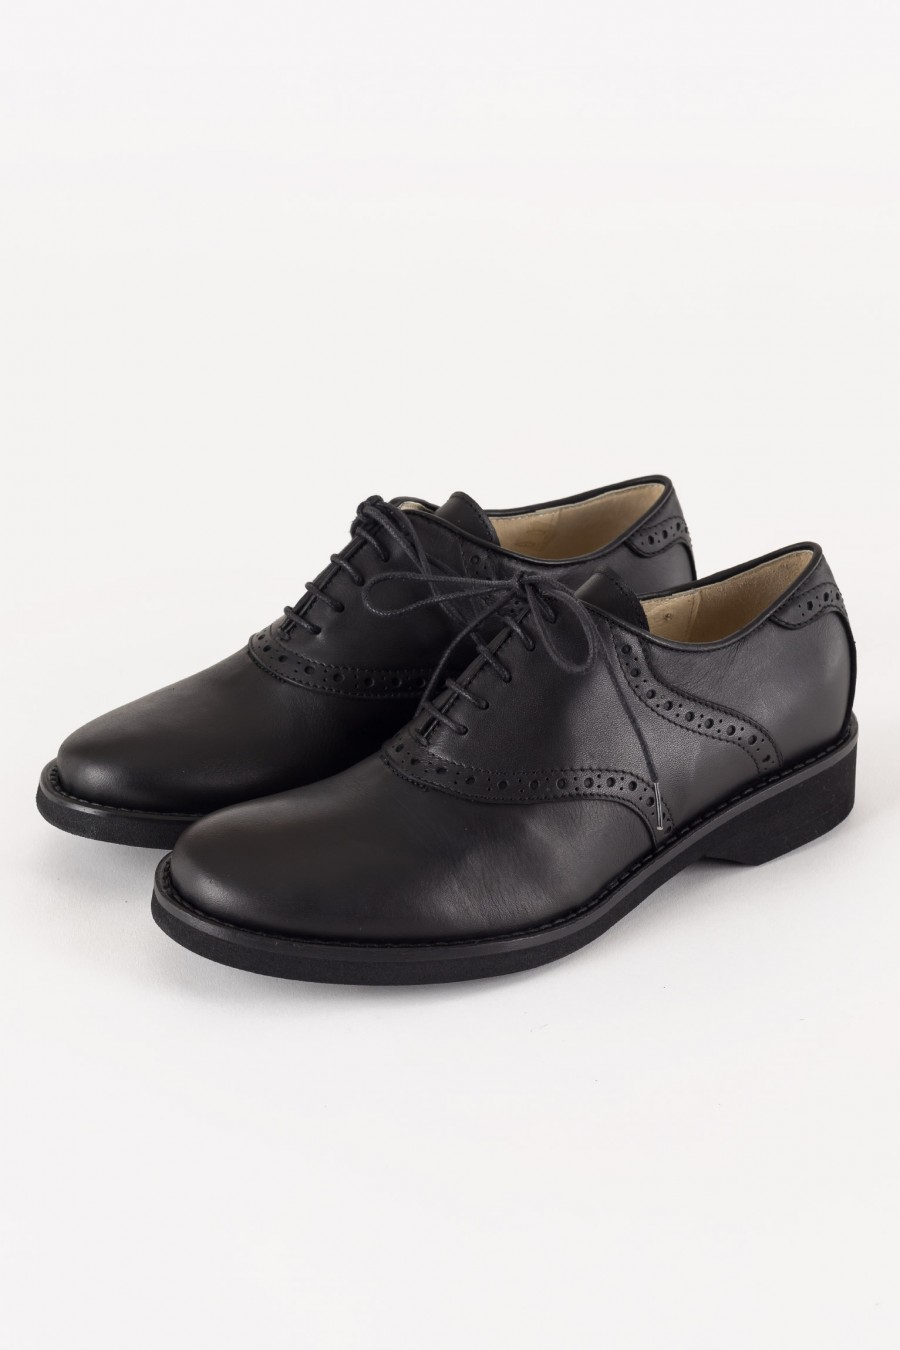 Shoes with rubber sole